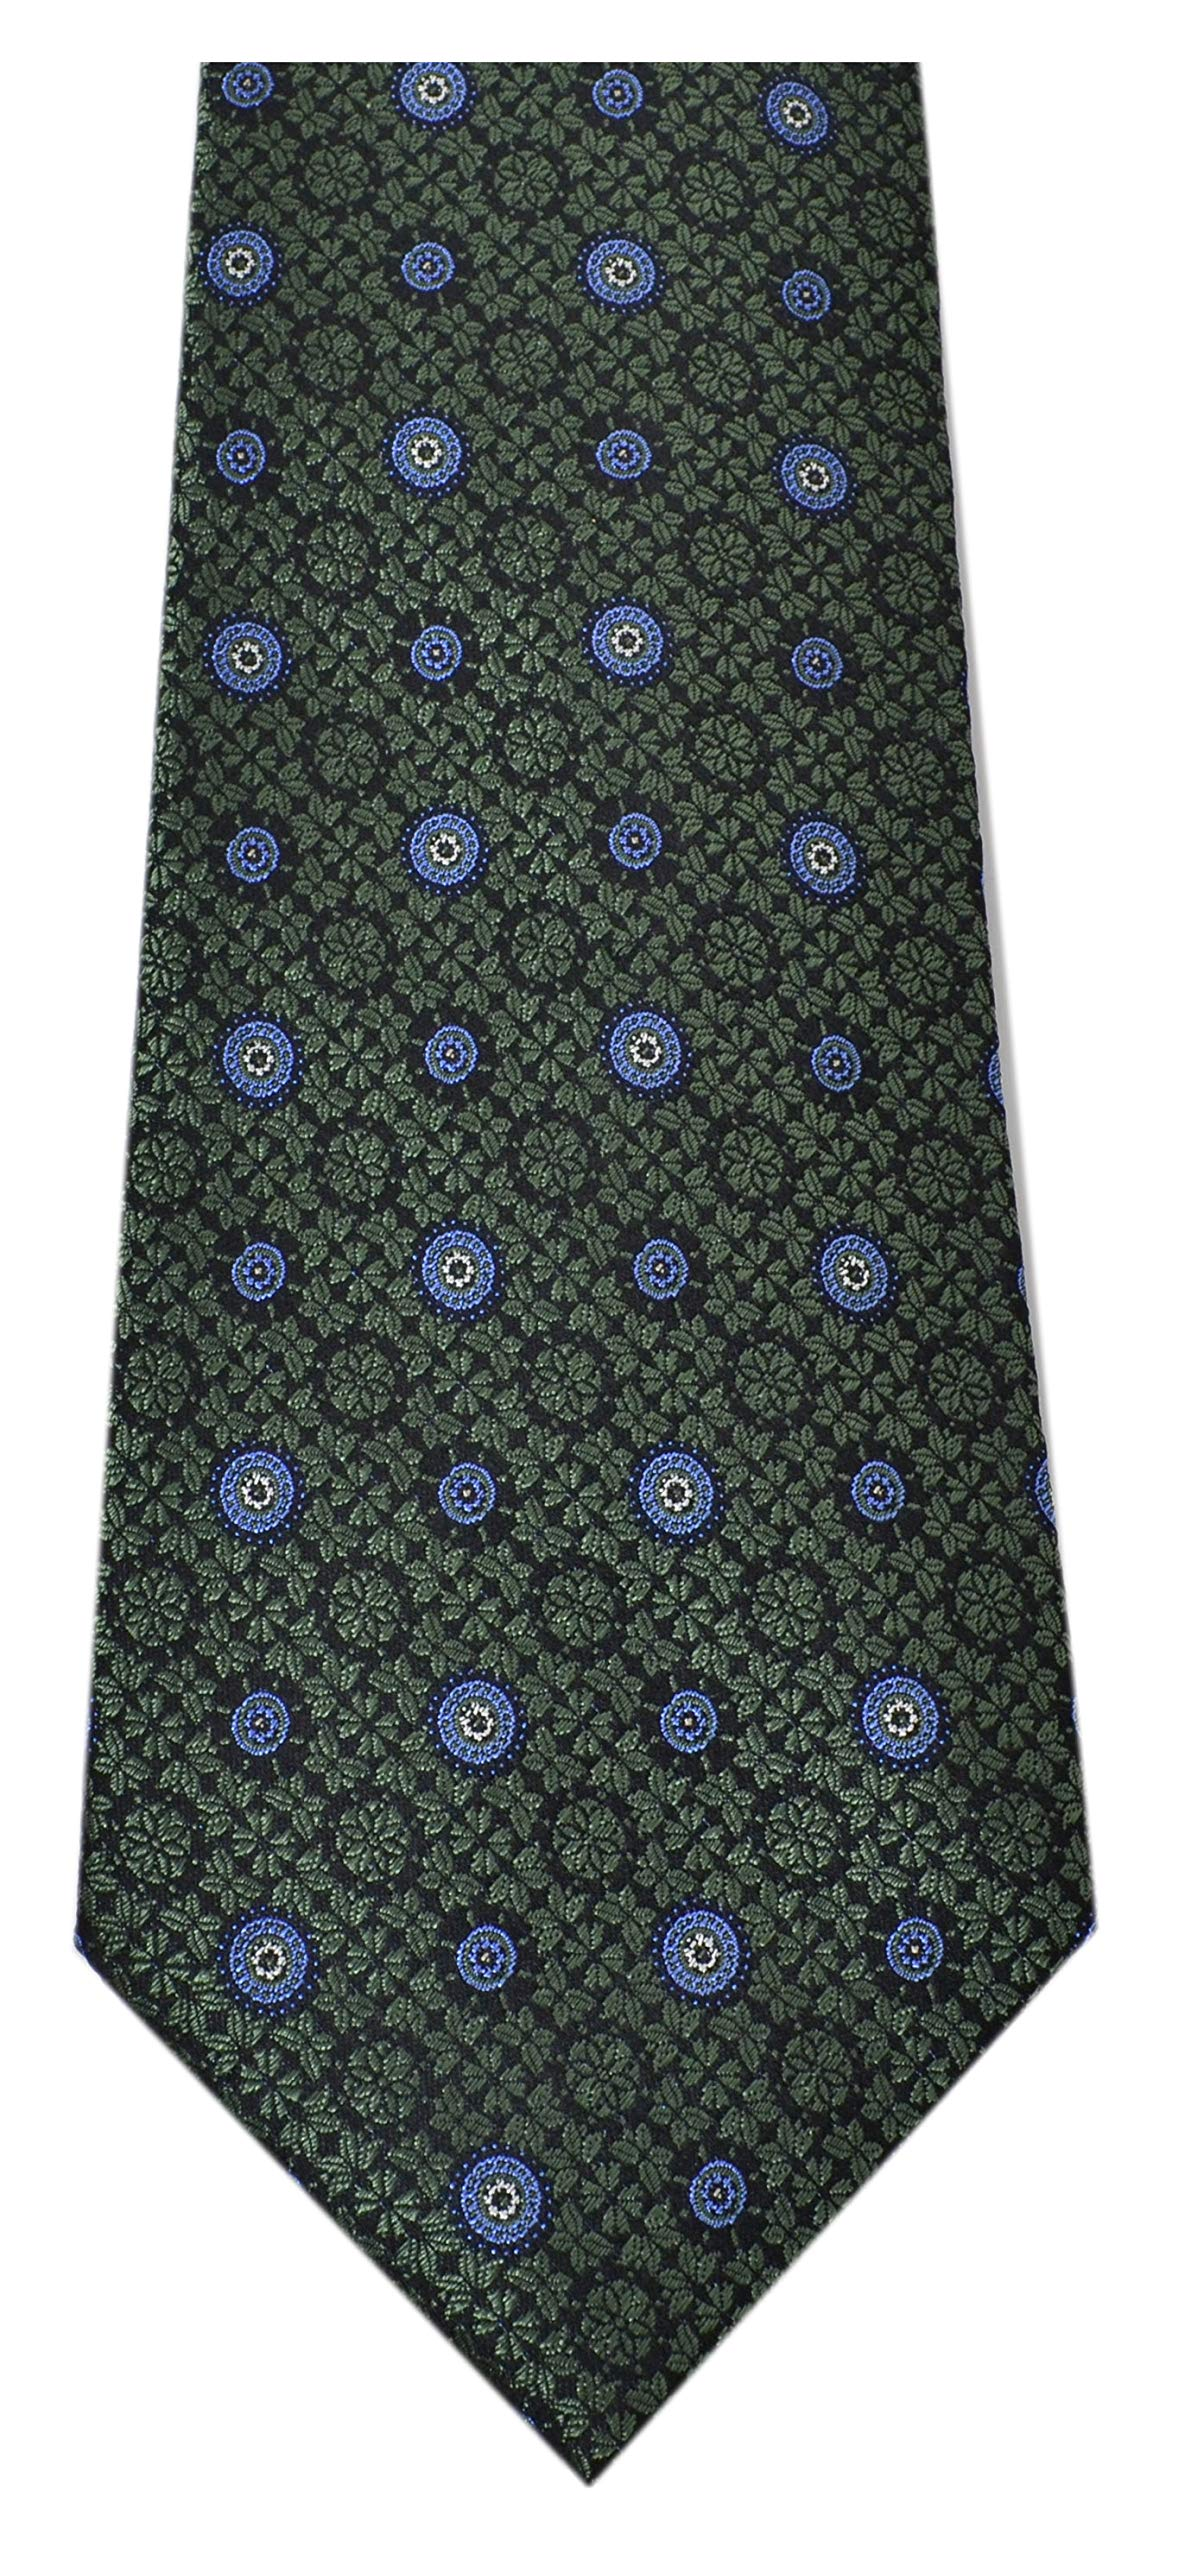 Tasso Elba Men's Neck Tie DIPIERO MEDALLION Green